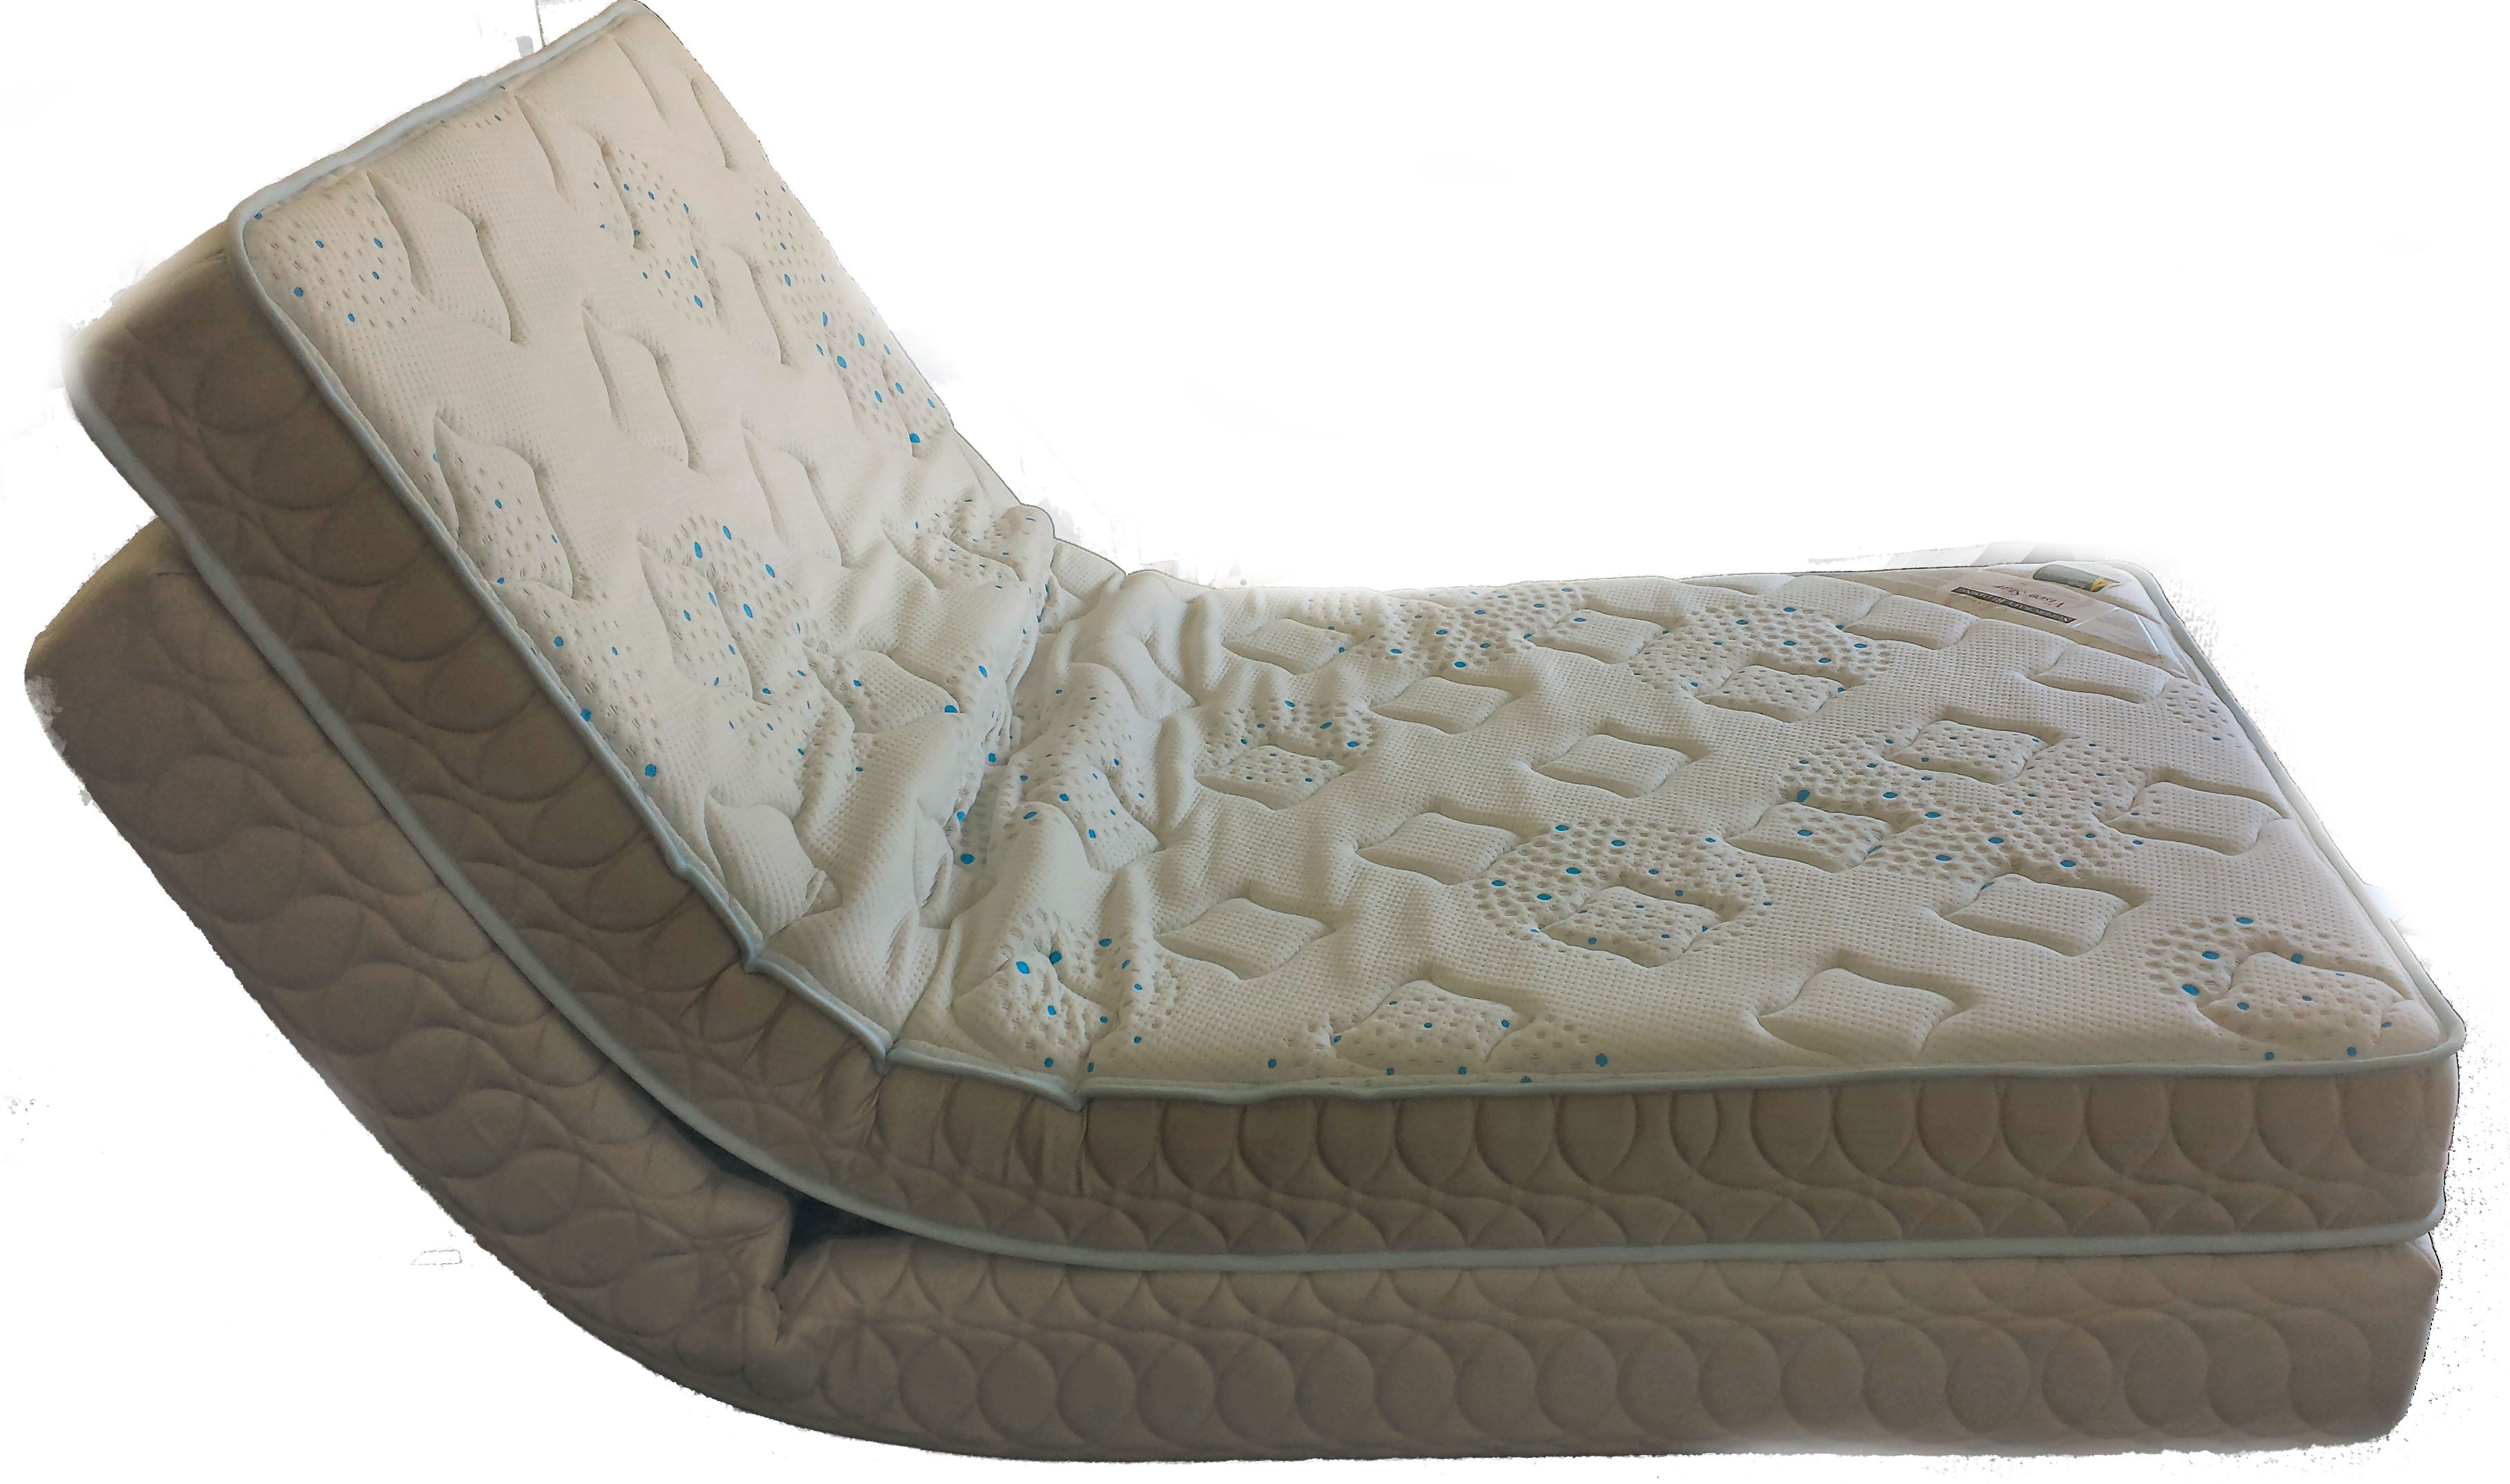 Dreamflex Adjustable Bed